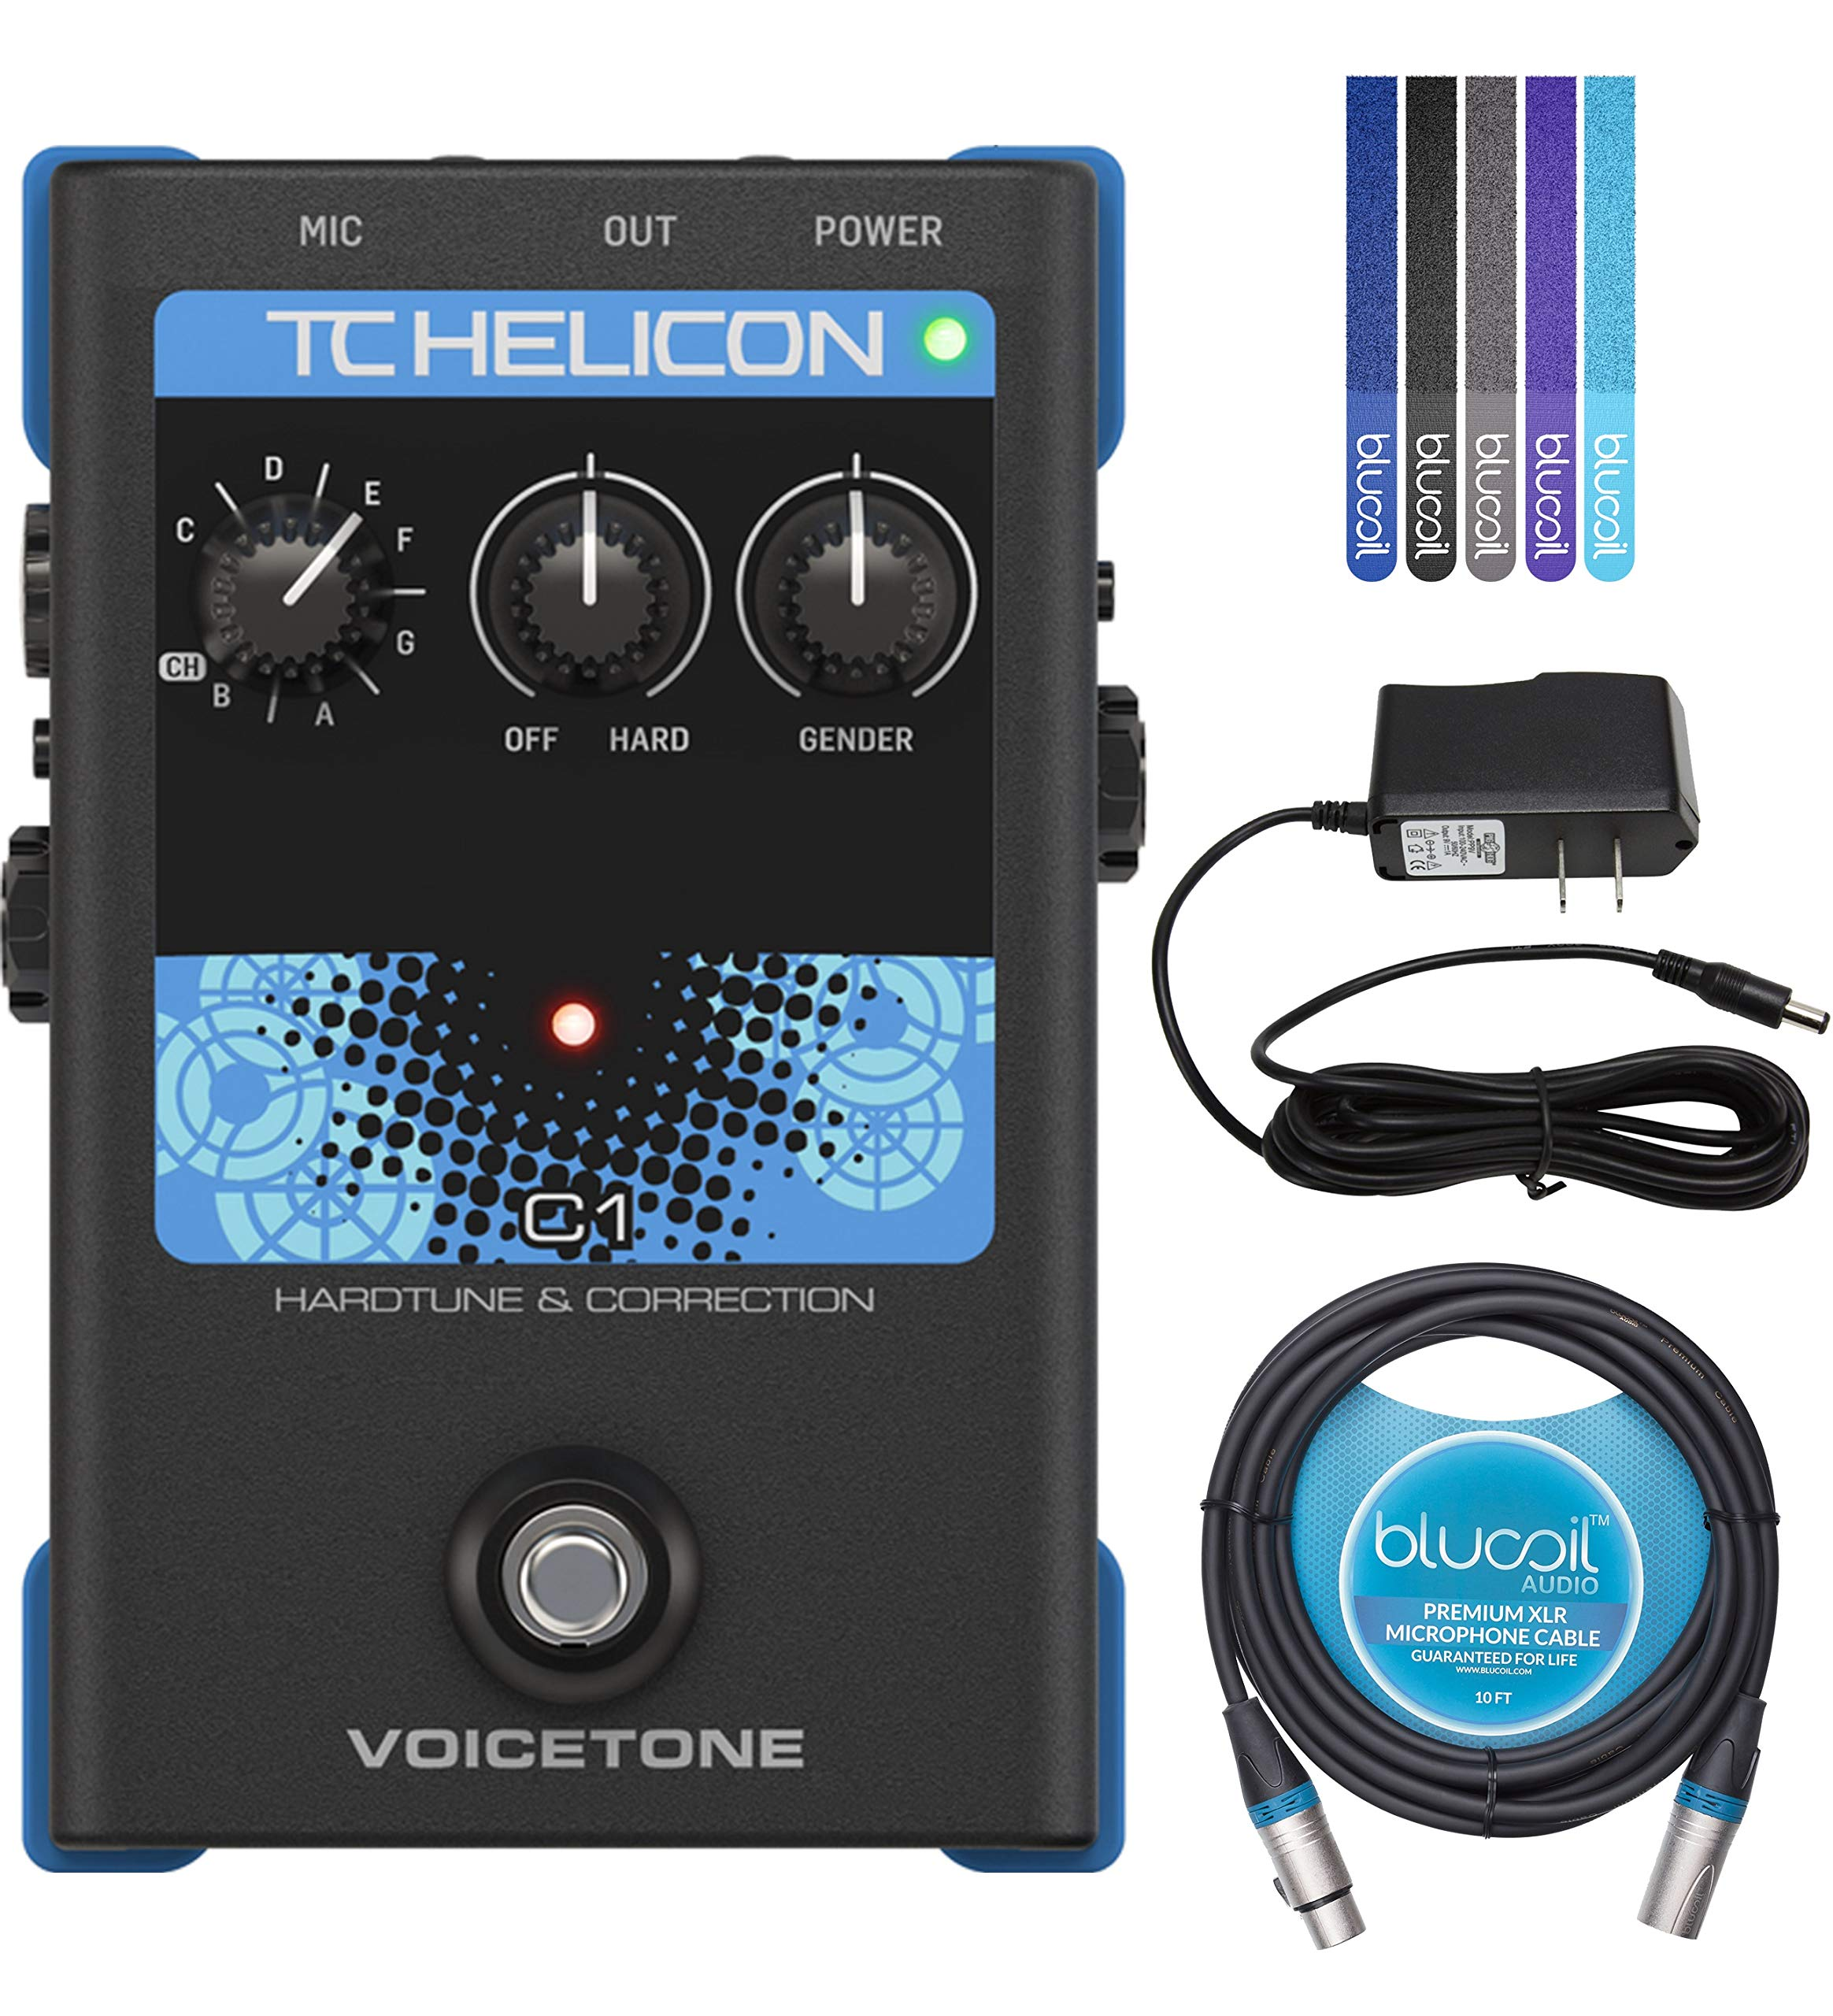 TC Helicon VoiceTone C1 Hardtune and Correction Vocal Effects Pedal Bundle with 12V 400mA DC Power Supply, Blucoil 10-FT Balanced XLR Cable, and 5-Pack of Reusable Cable Ties